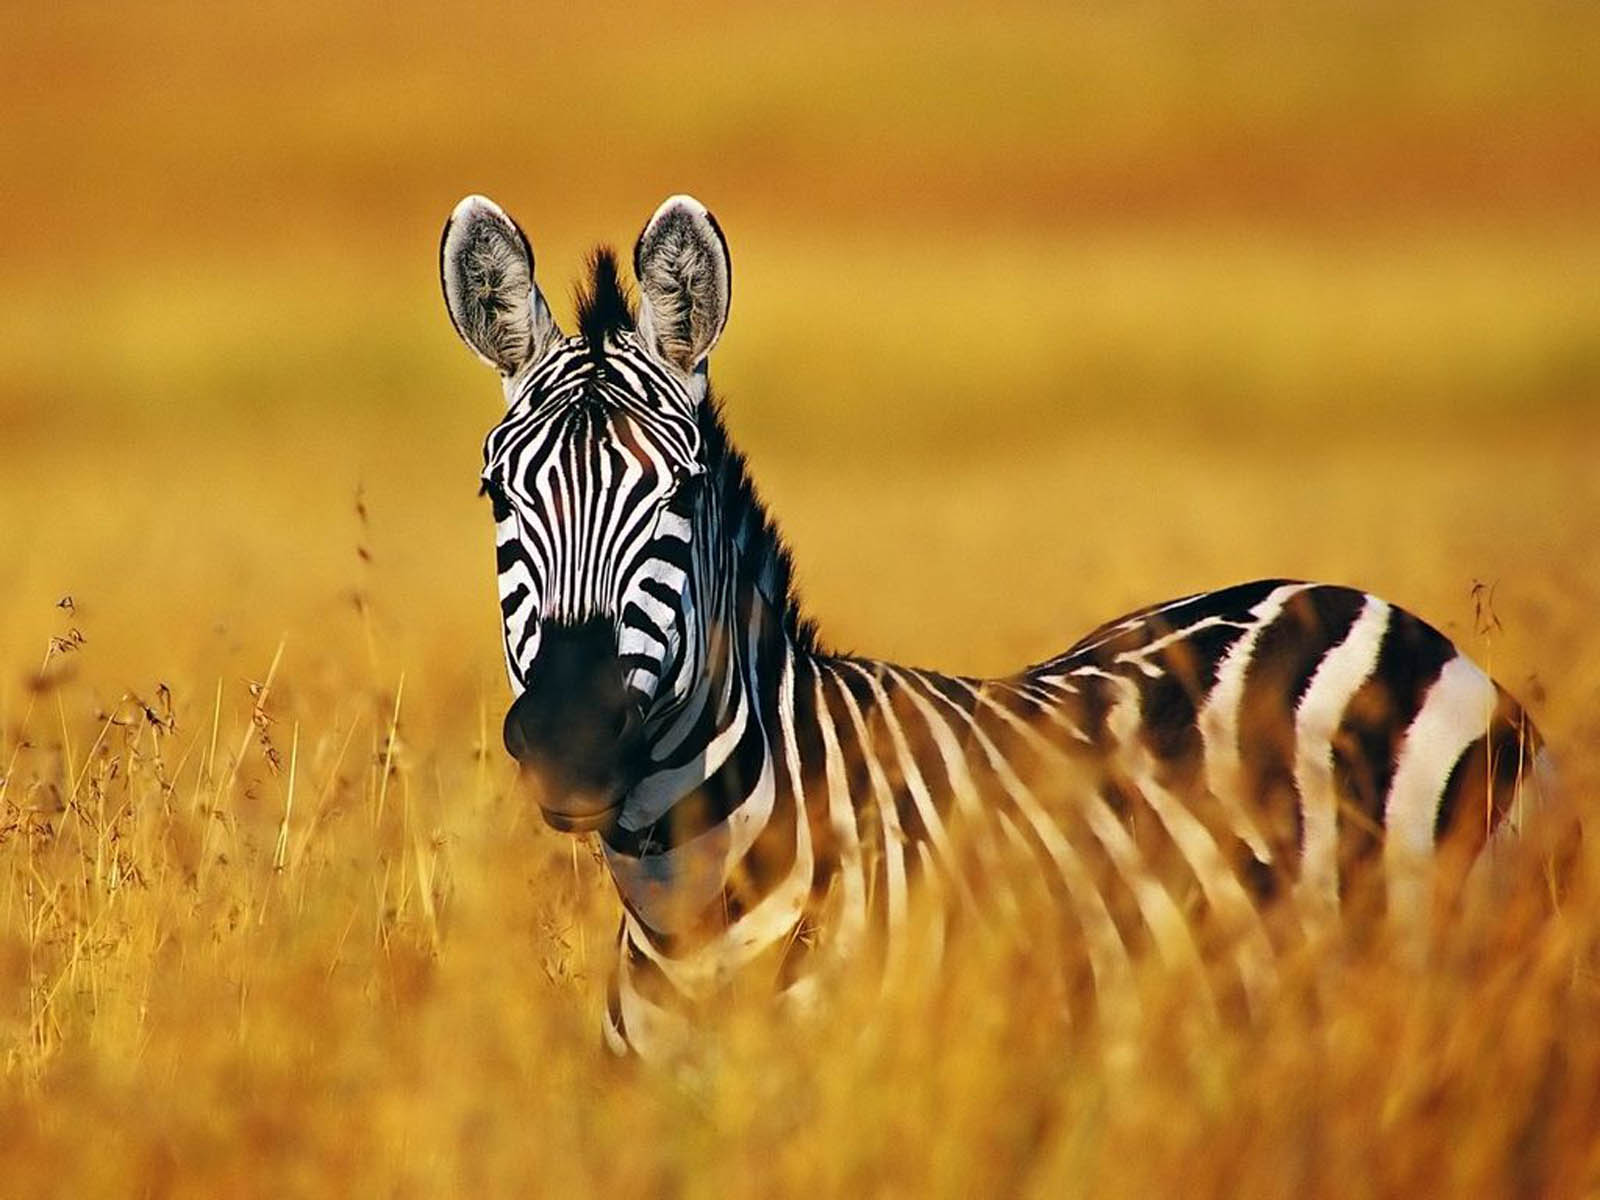 Wallpapers: Zebra Wallpapers